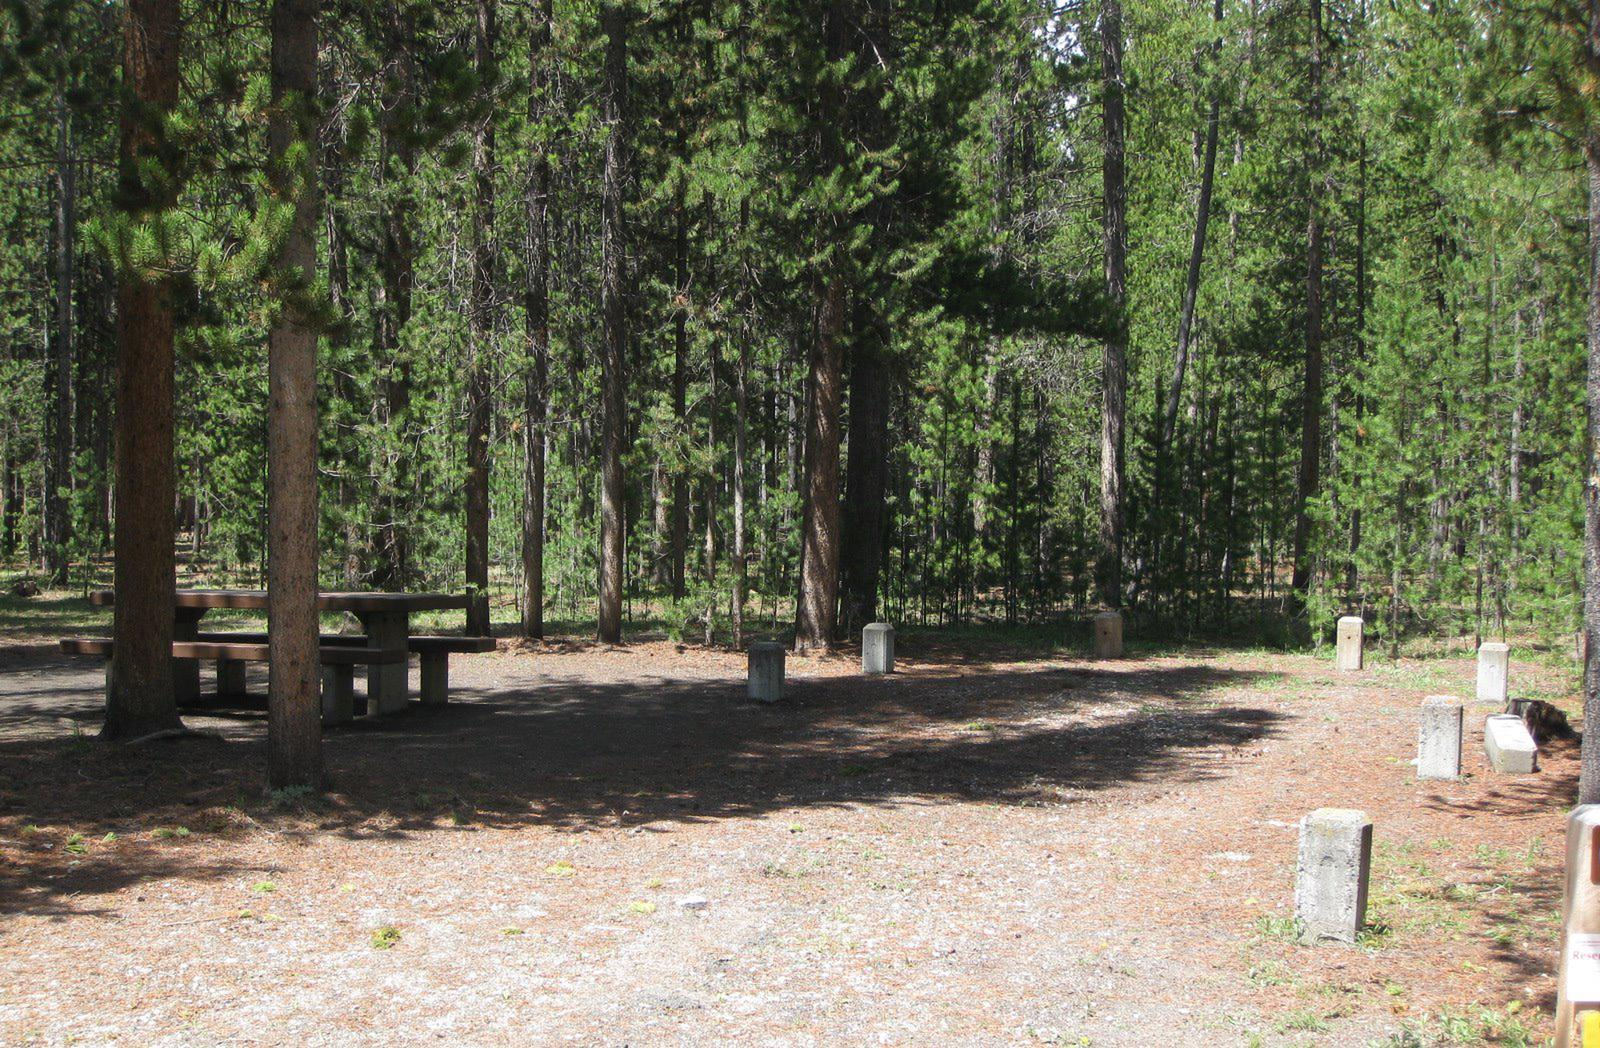 Site C8, surrounded by pine trees, picnic table & fire ringSite C8